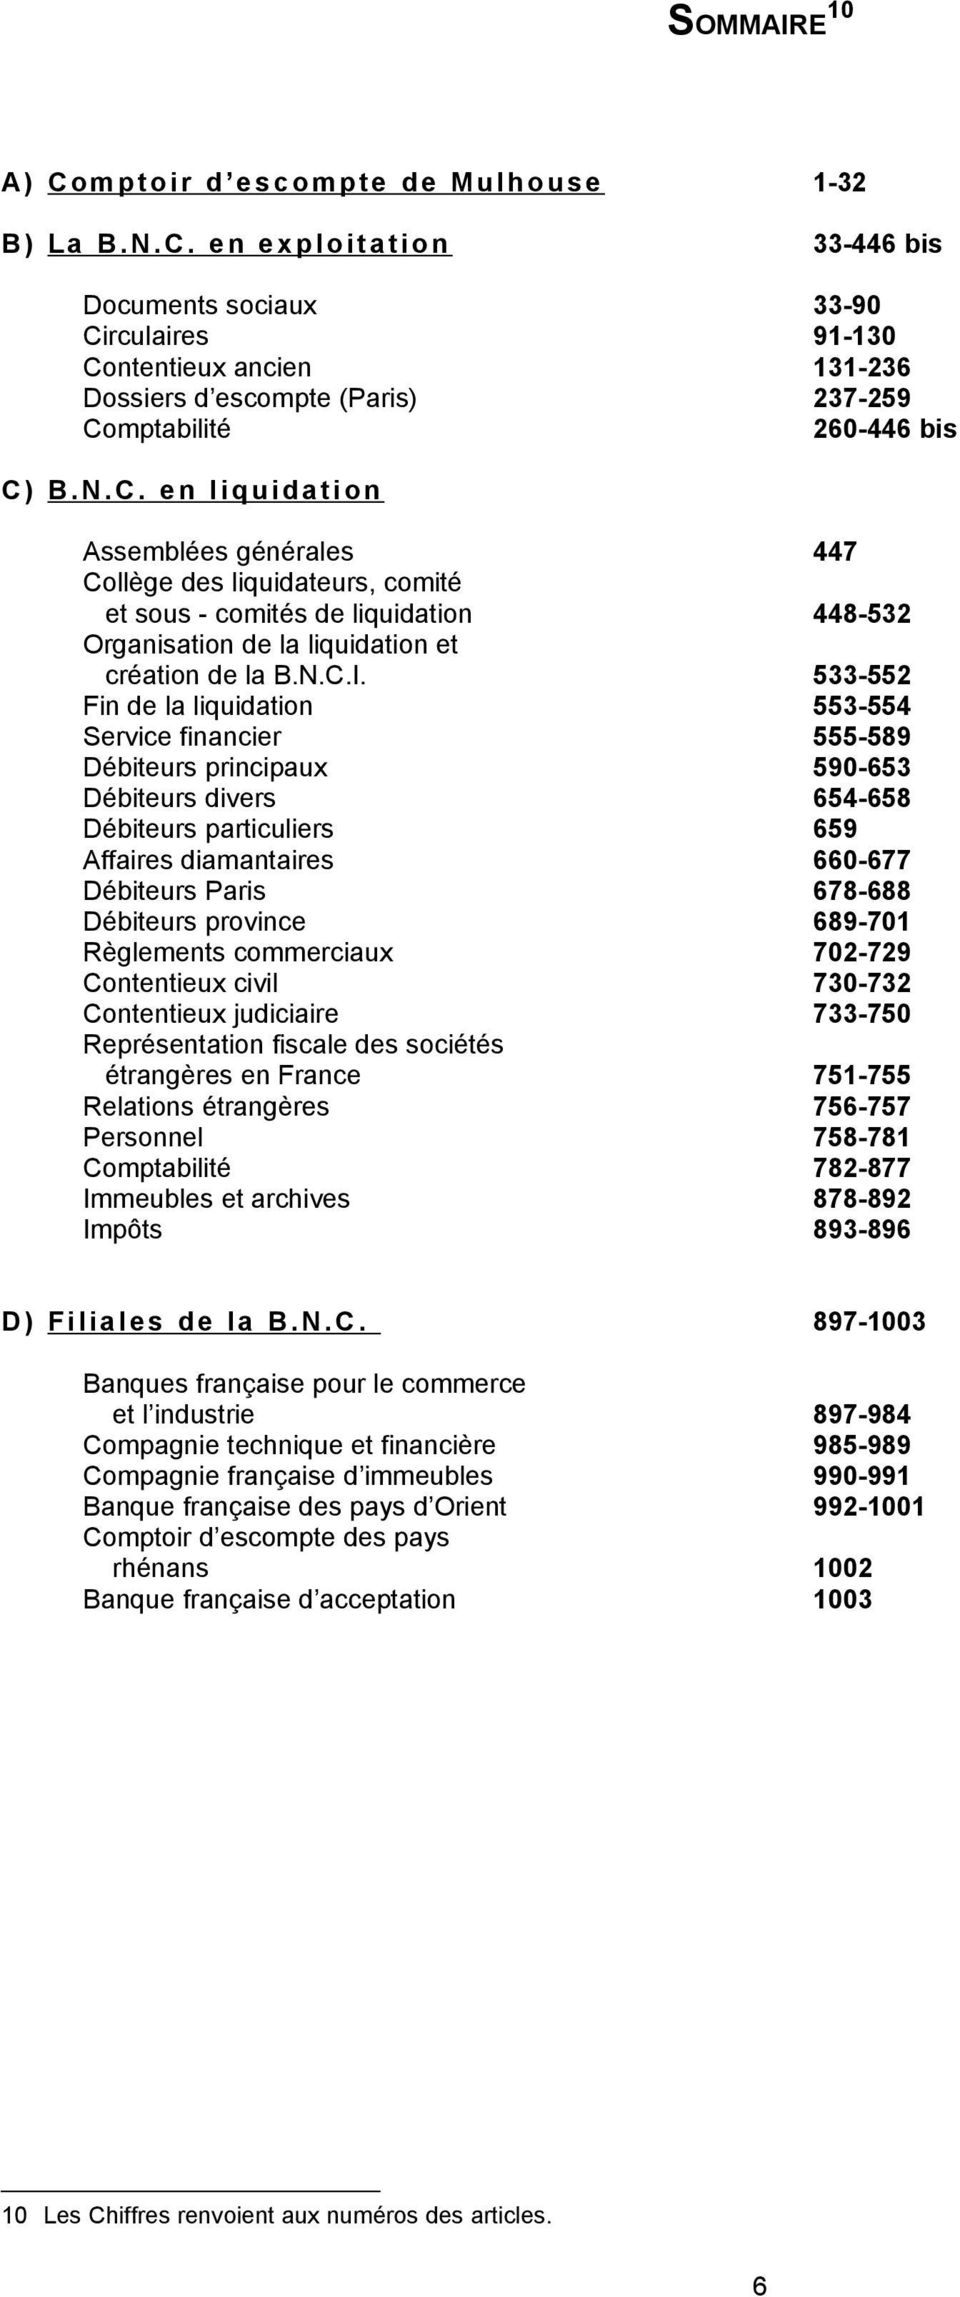 Fin de la liquidation Service financier Débiteurs principaux Débiteurs divers Débiteurs particuliers Affaires diamantaires Débiteurs Paris Débiteurs province Règlements commerciaux Contentieux civil